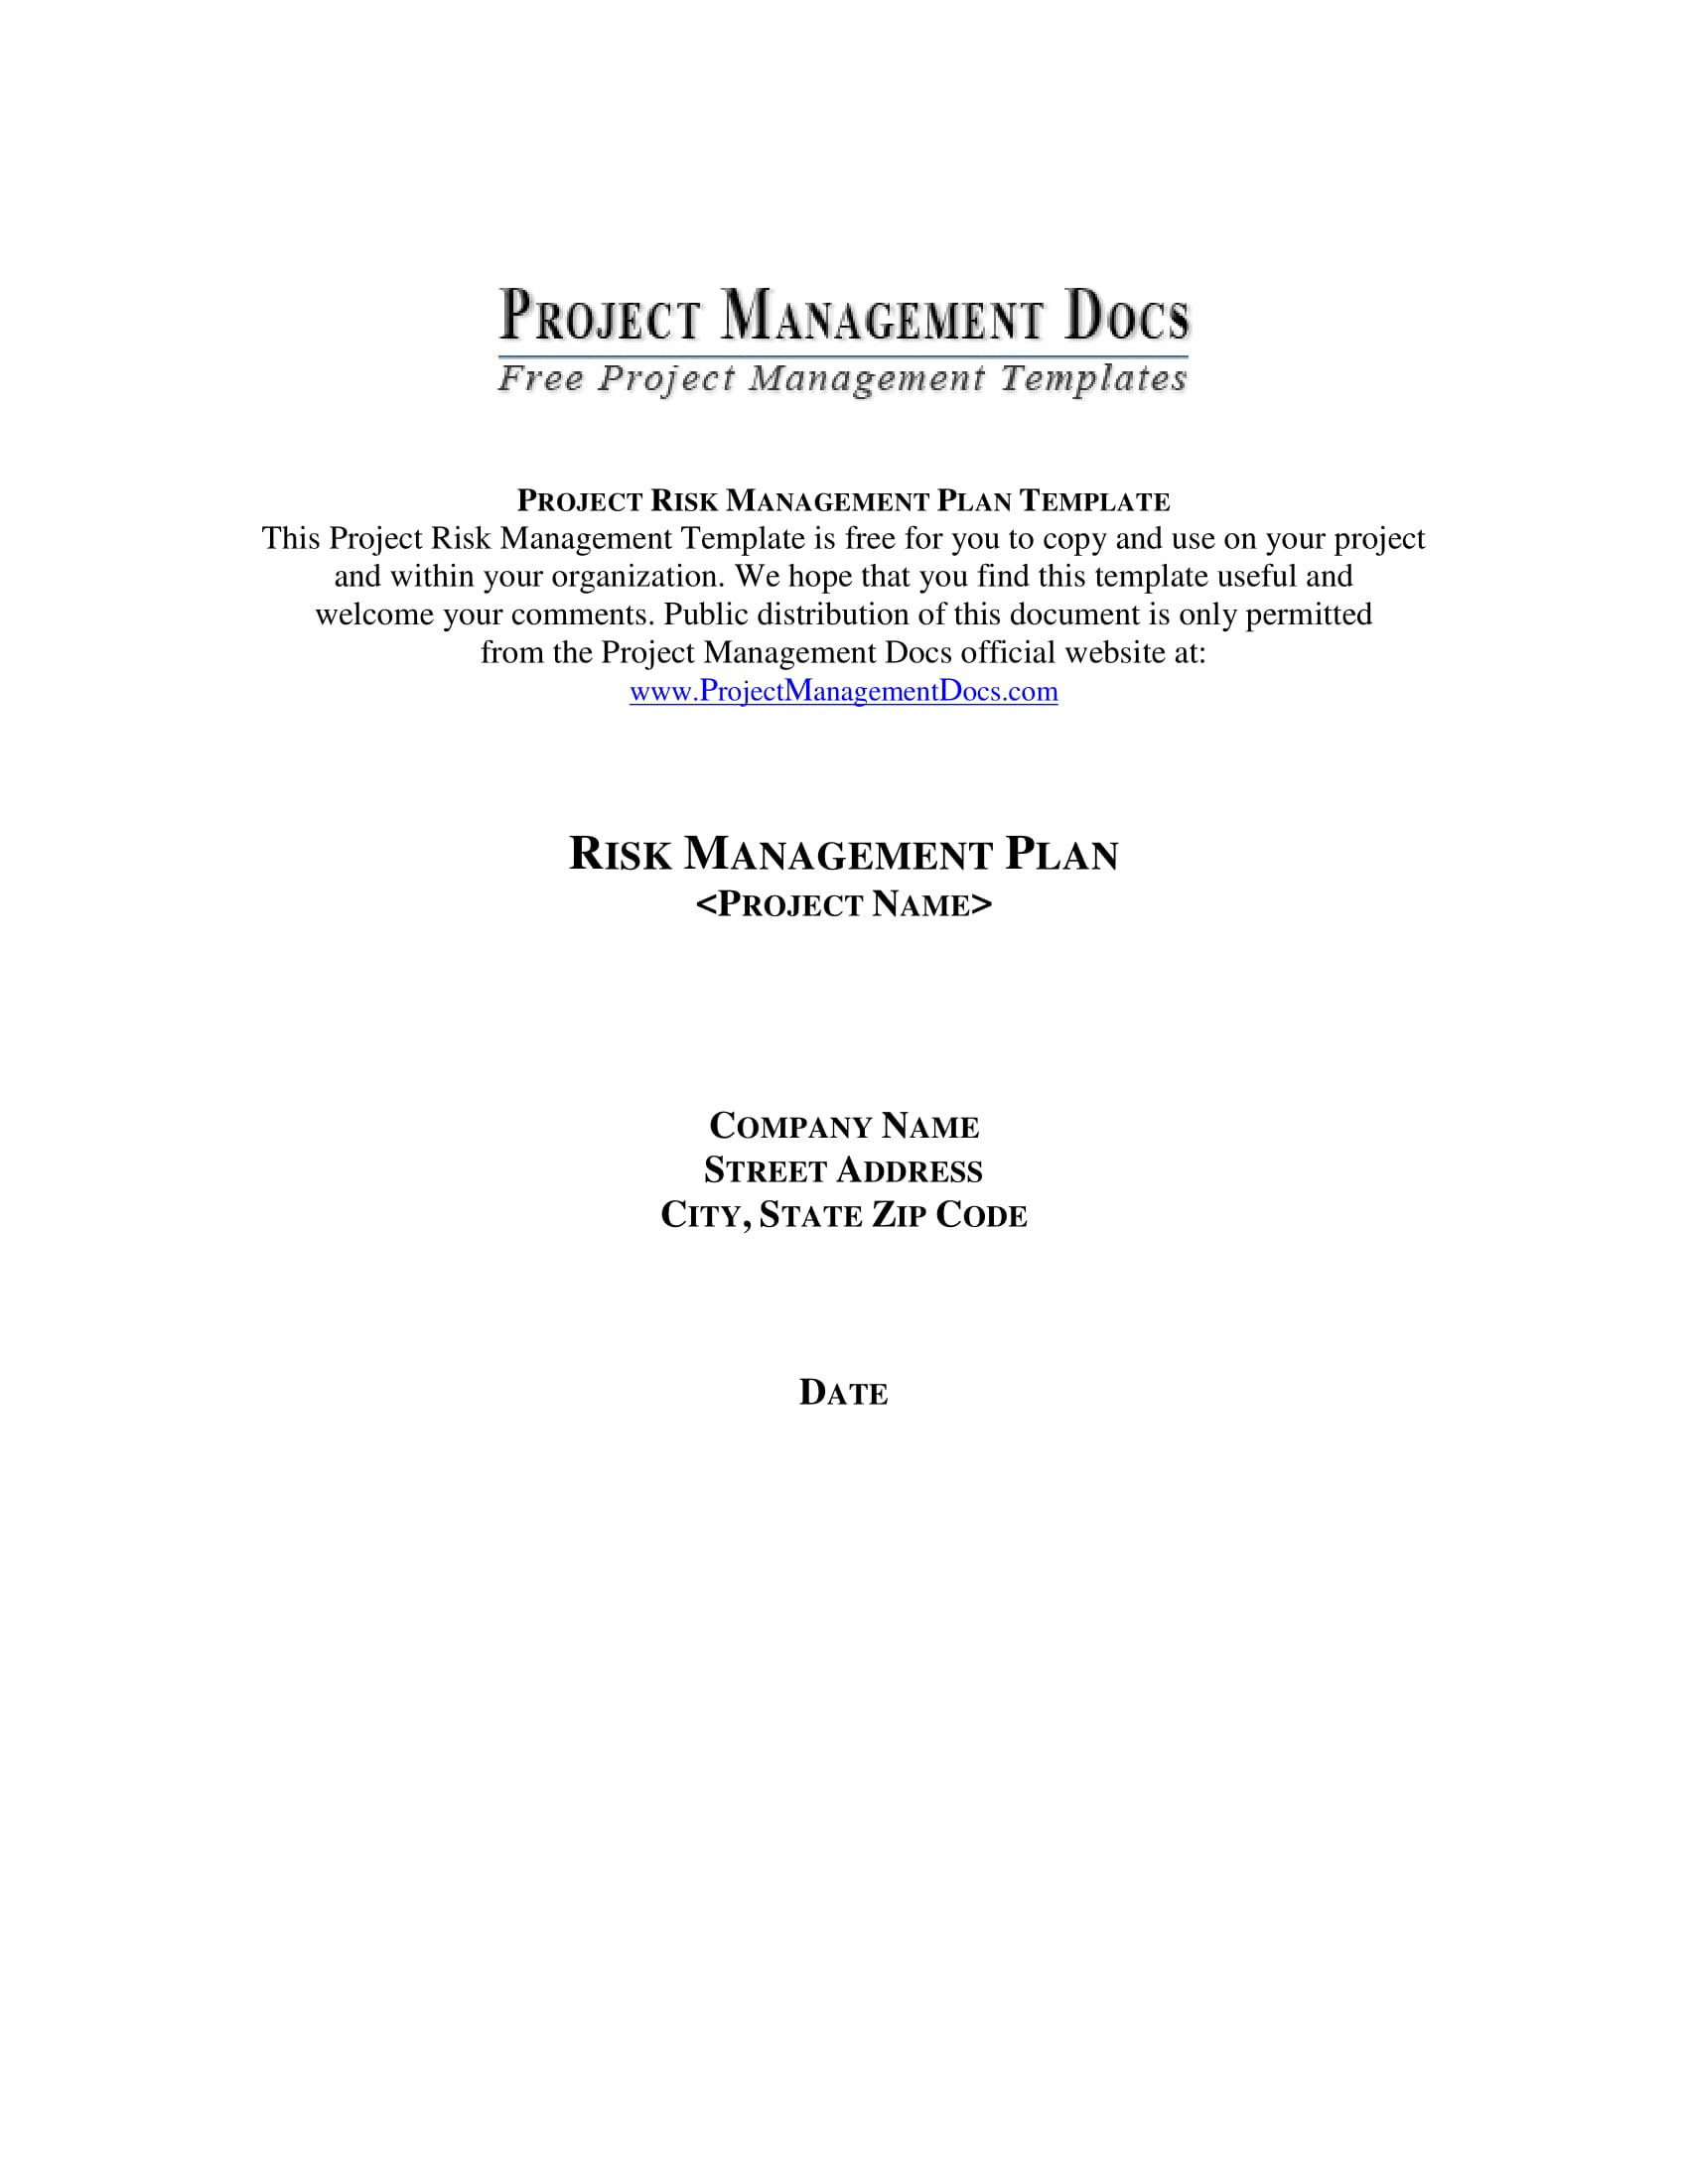 risk management plan 1